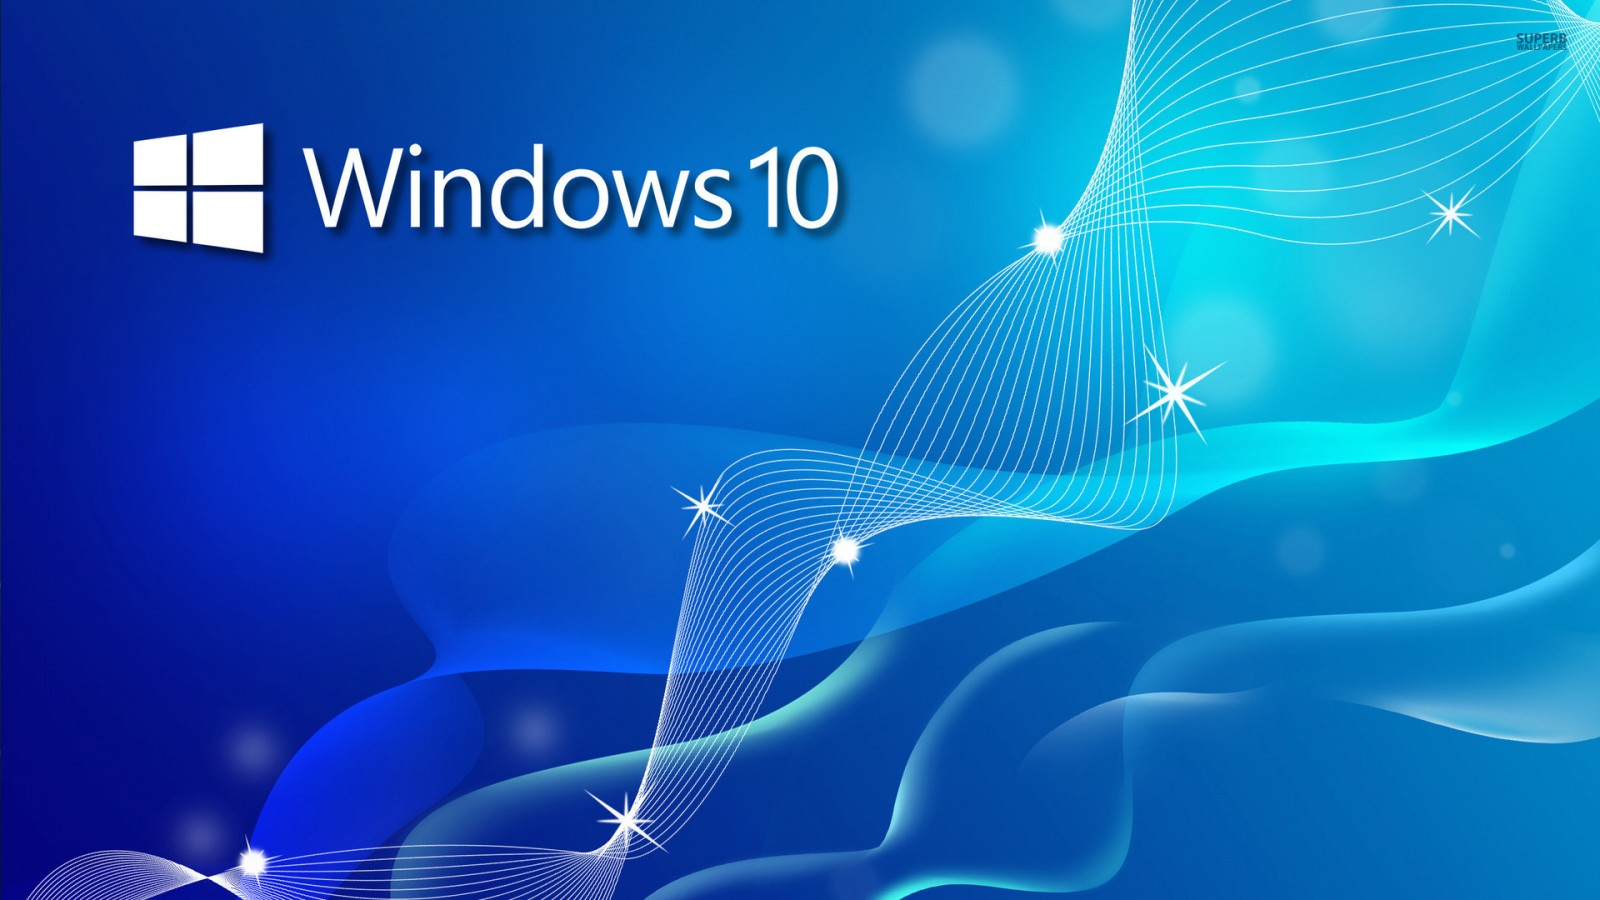 Download Animated Wallpapers Windows 10 Hd Backgrounds